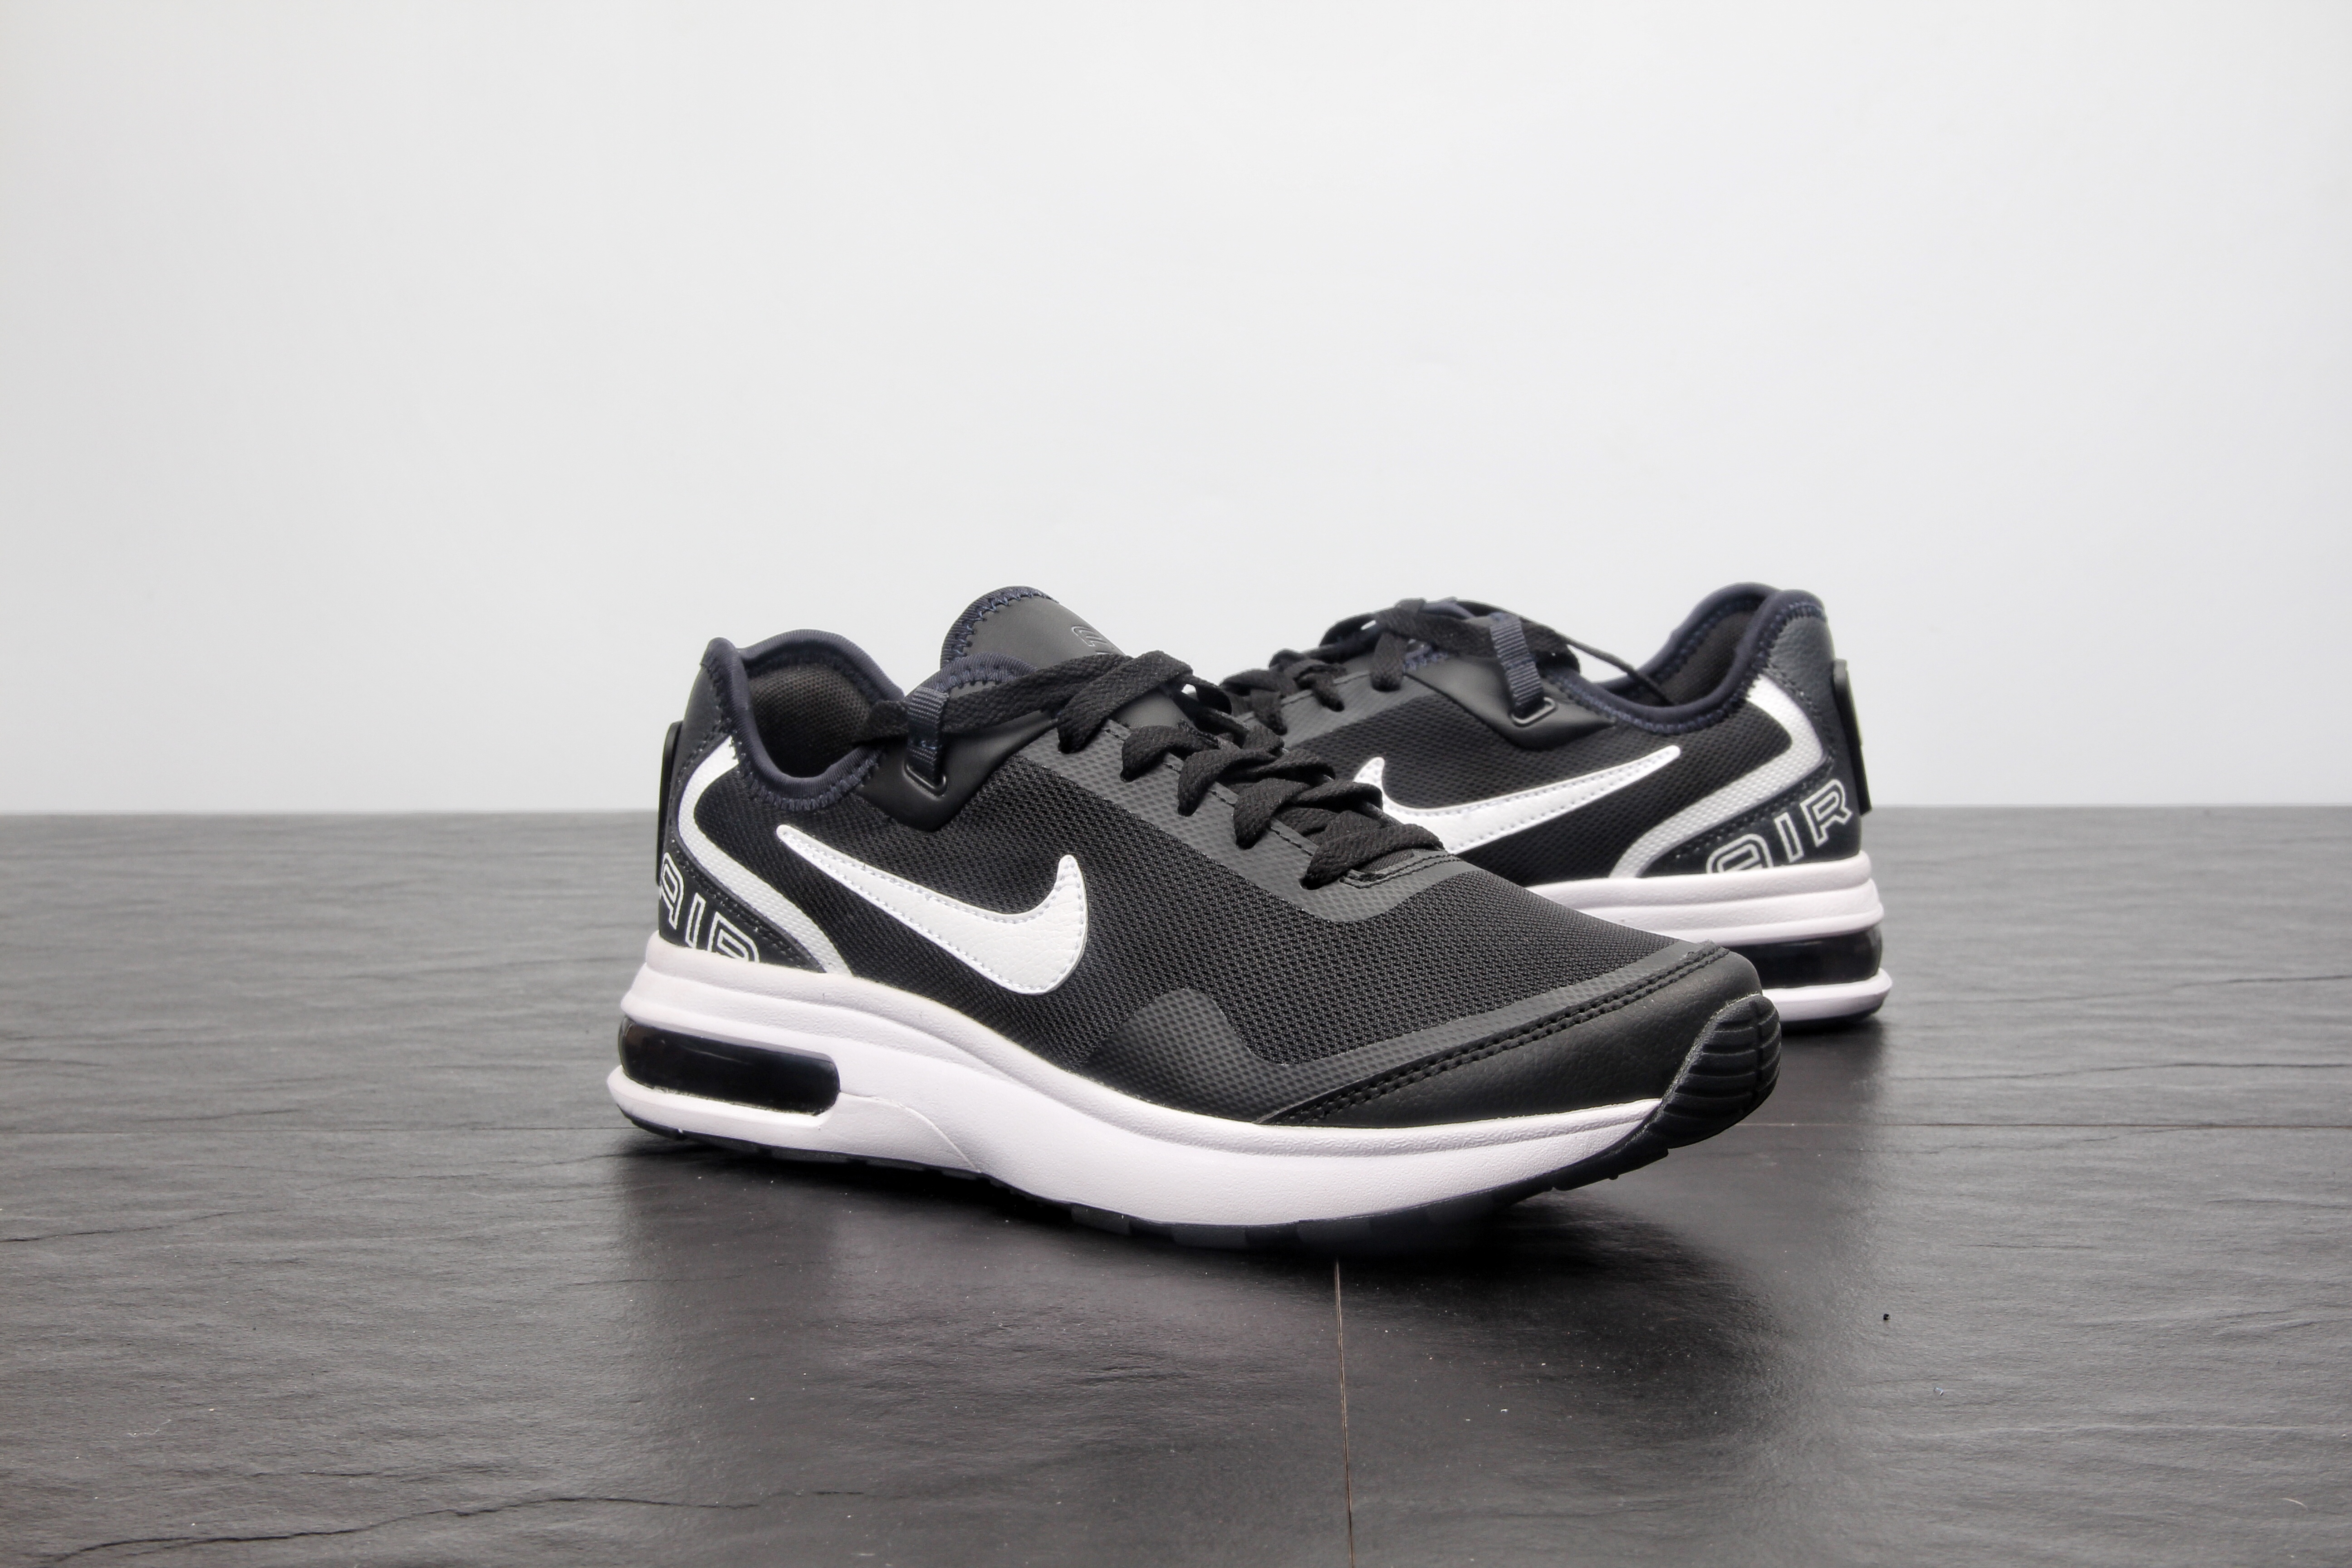 Nike Air Max LB Black White Shoes